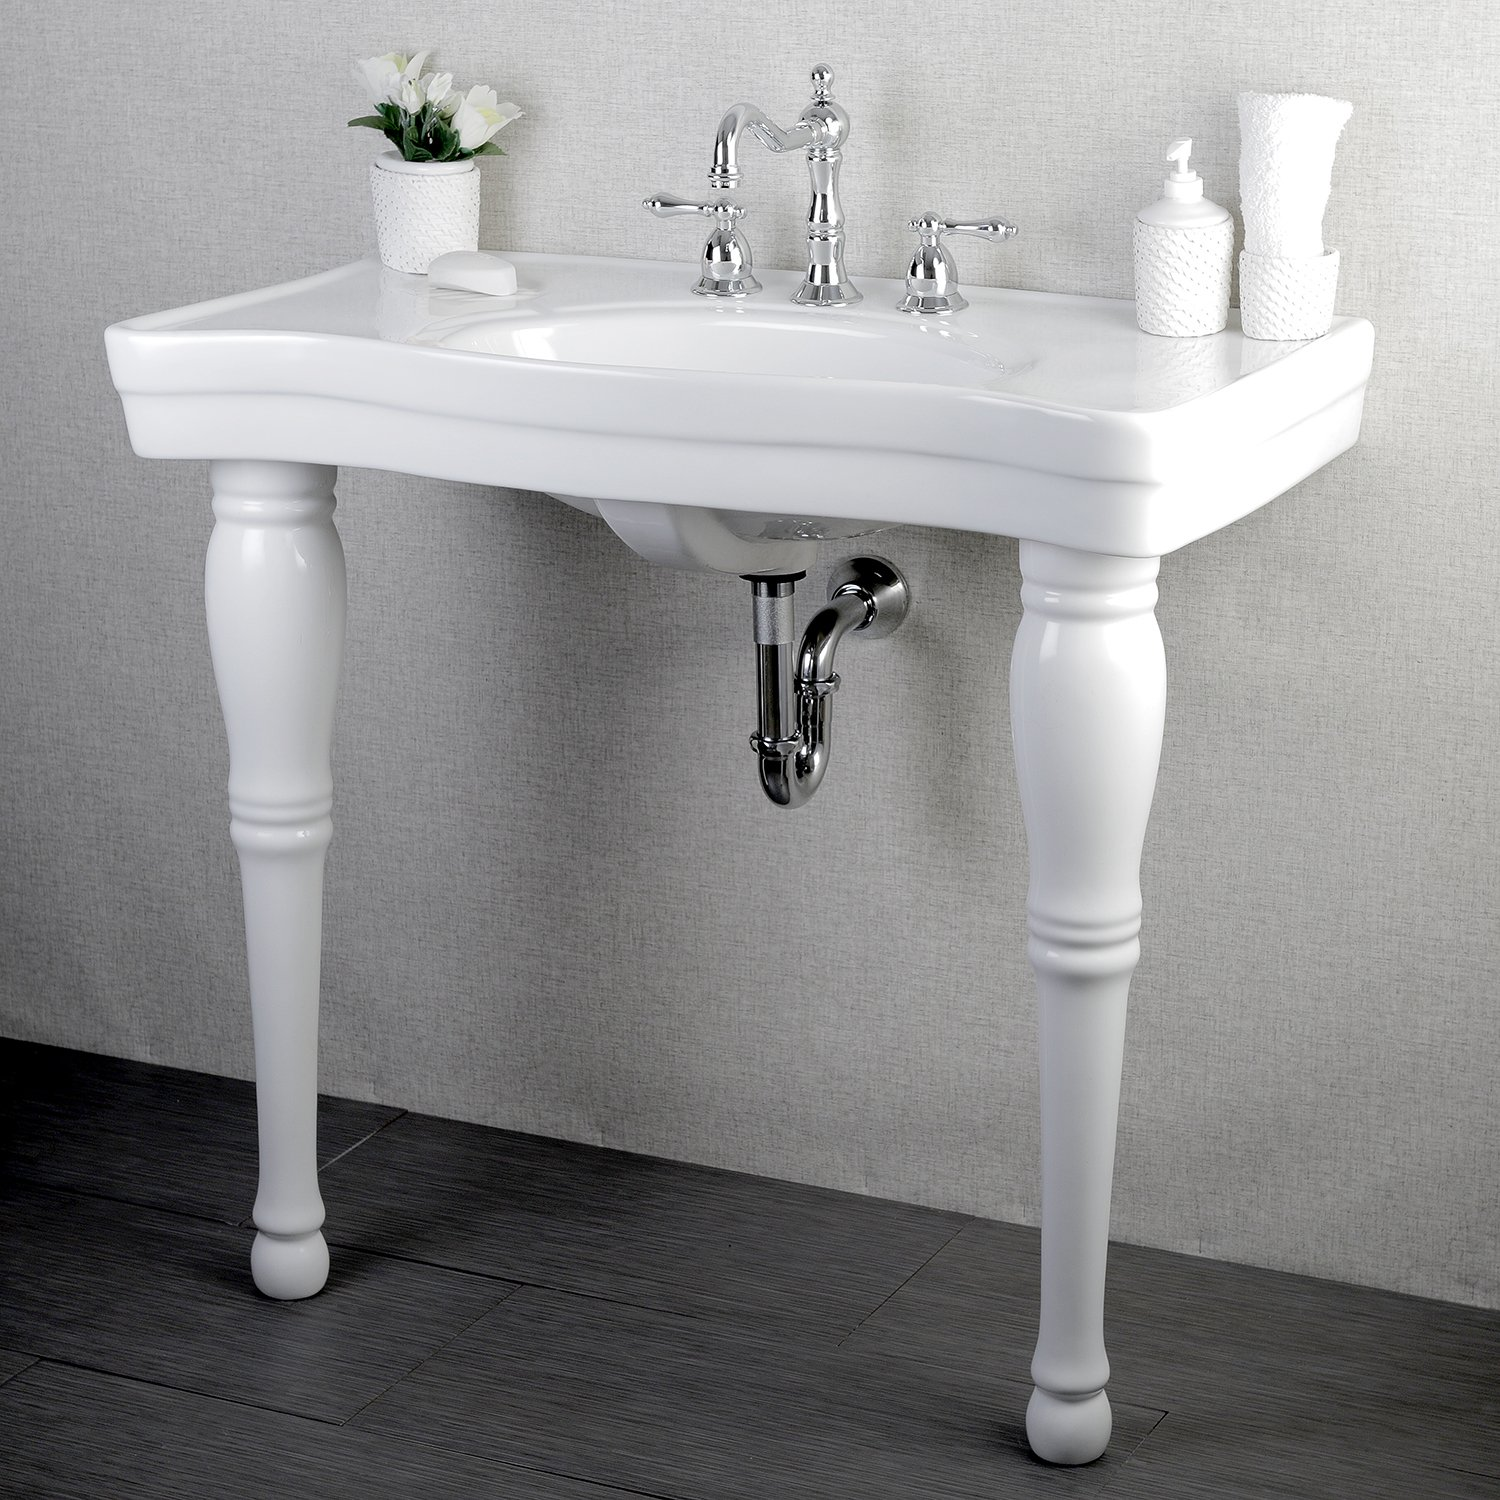 Console sink with chrome legs - Kingston Brass Vpb1368 Designer Fauceture Imperial Console Sink Vitreous China With 8 Inch Centers White Pedestal Sinks Amazon Com